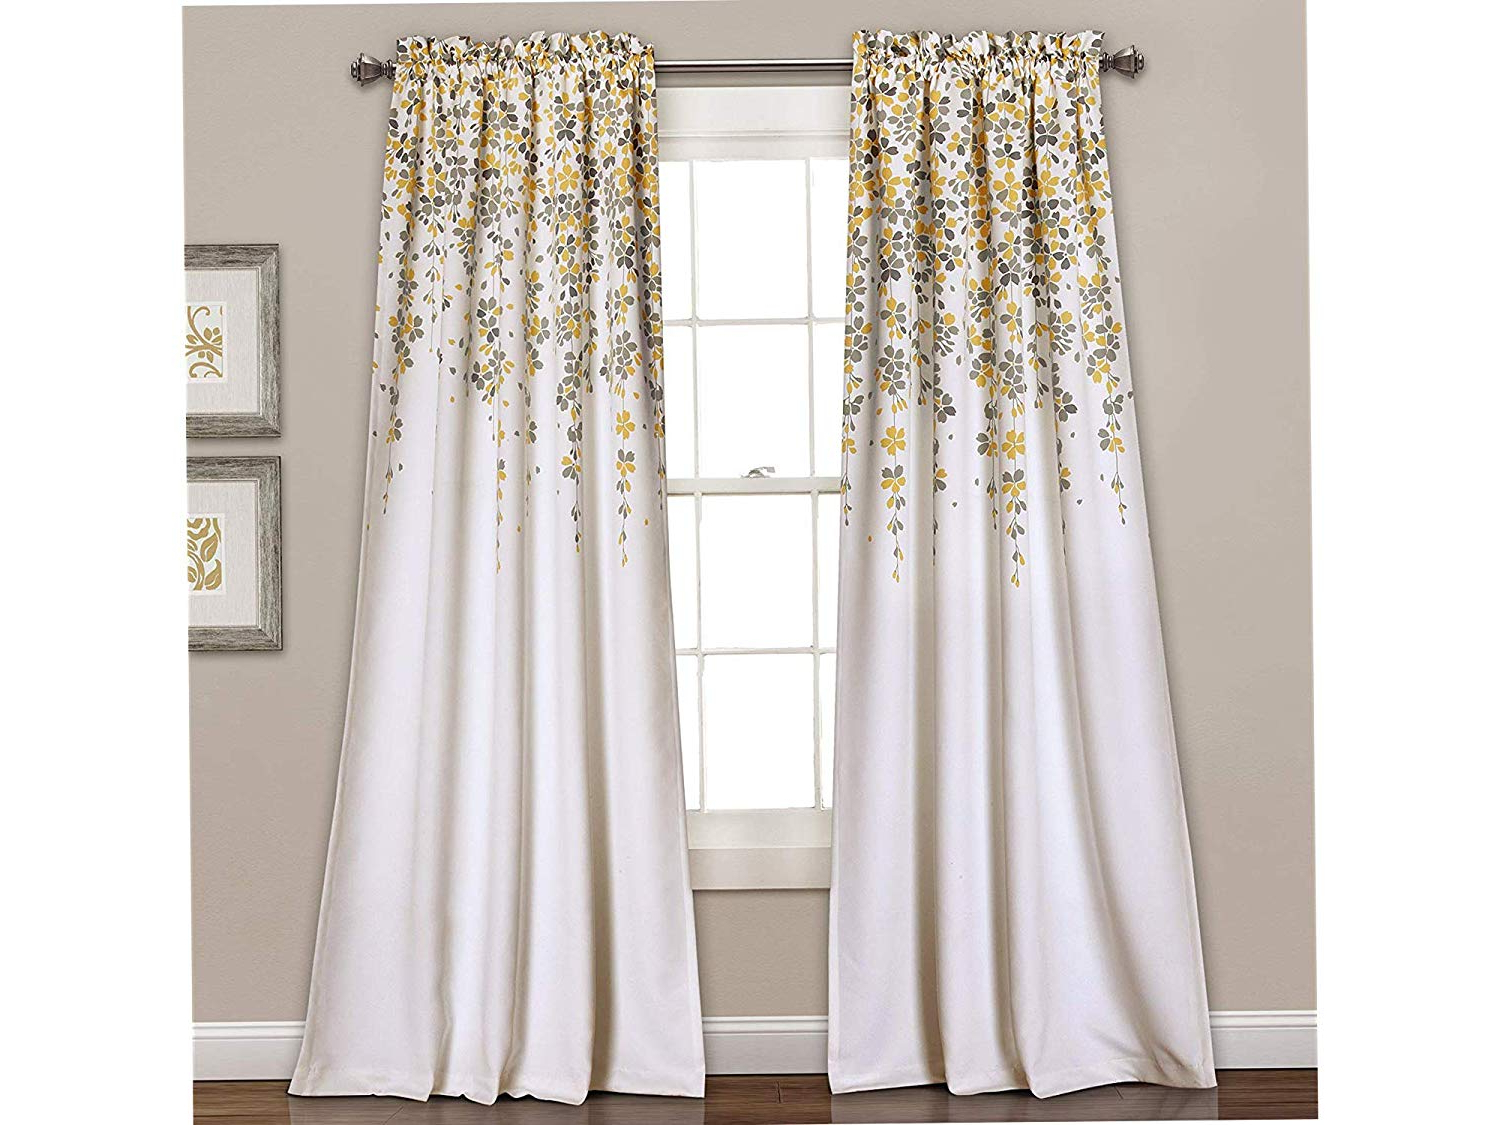 Latest Amazon: Lush Dеcоr Home Decor Weeping Flowers Room Pertaining To Dolores Room Darkening Floral Curtain Panel Pairs (View 20 of 20)